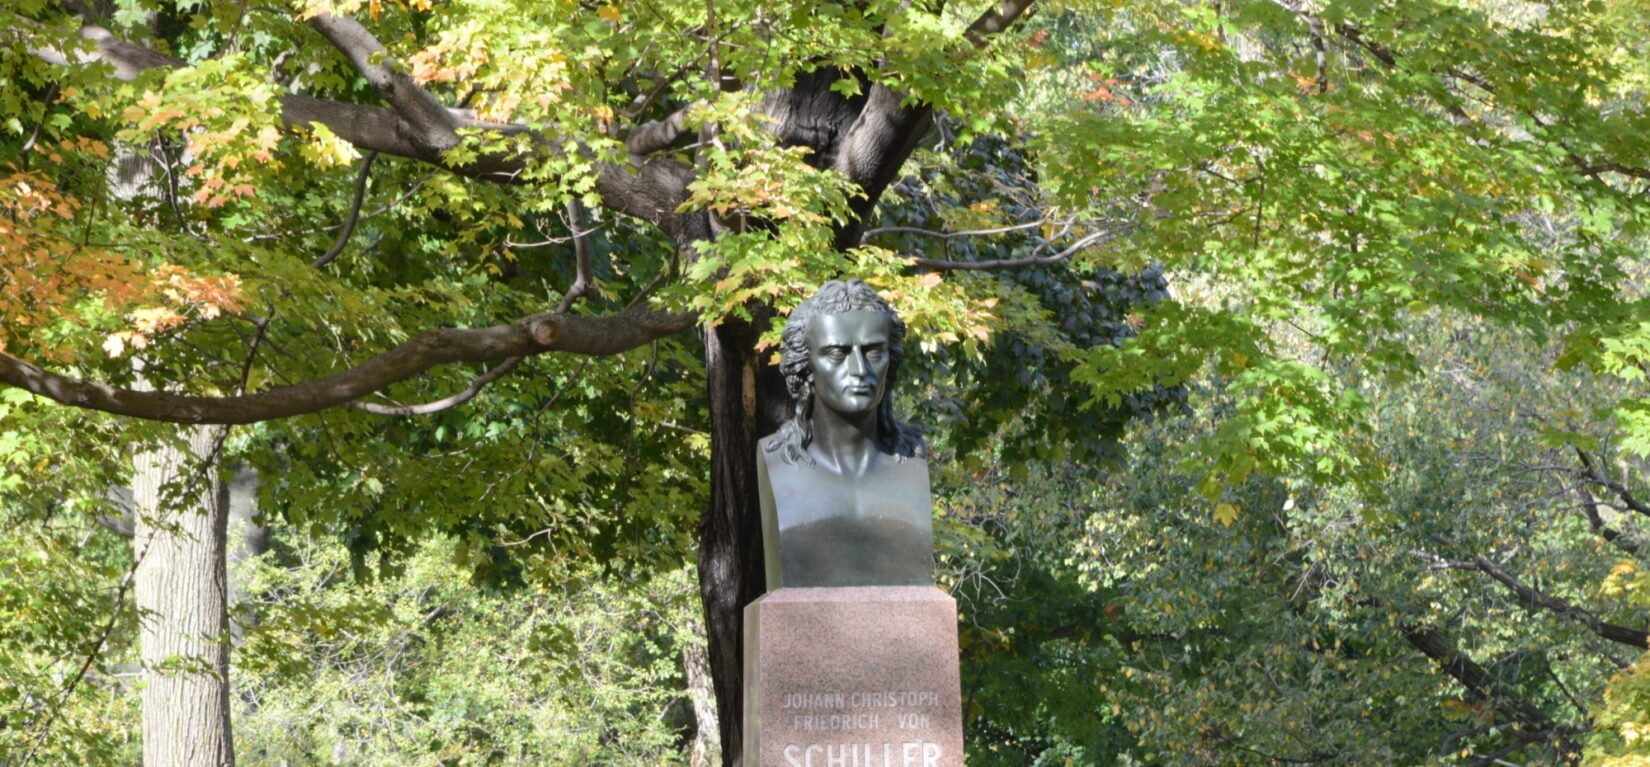 The bust of Schiller, on its pedestal, beneath the spreading branches of a tree